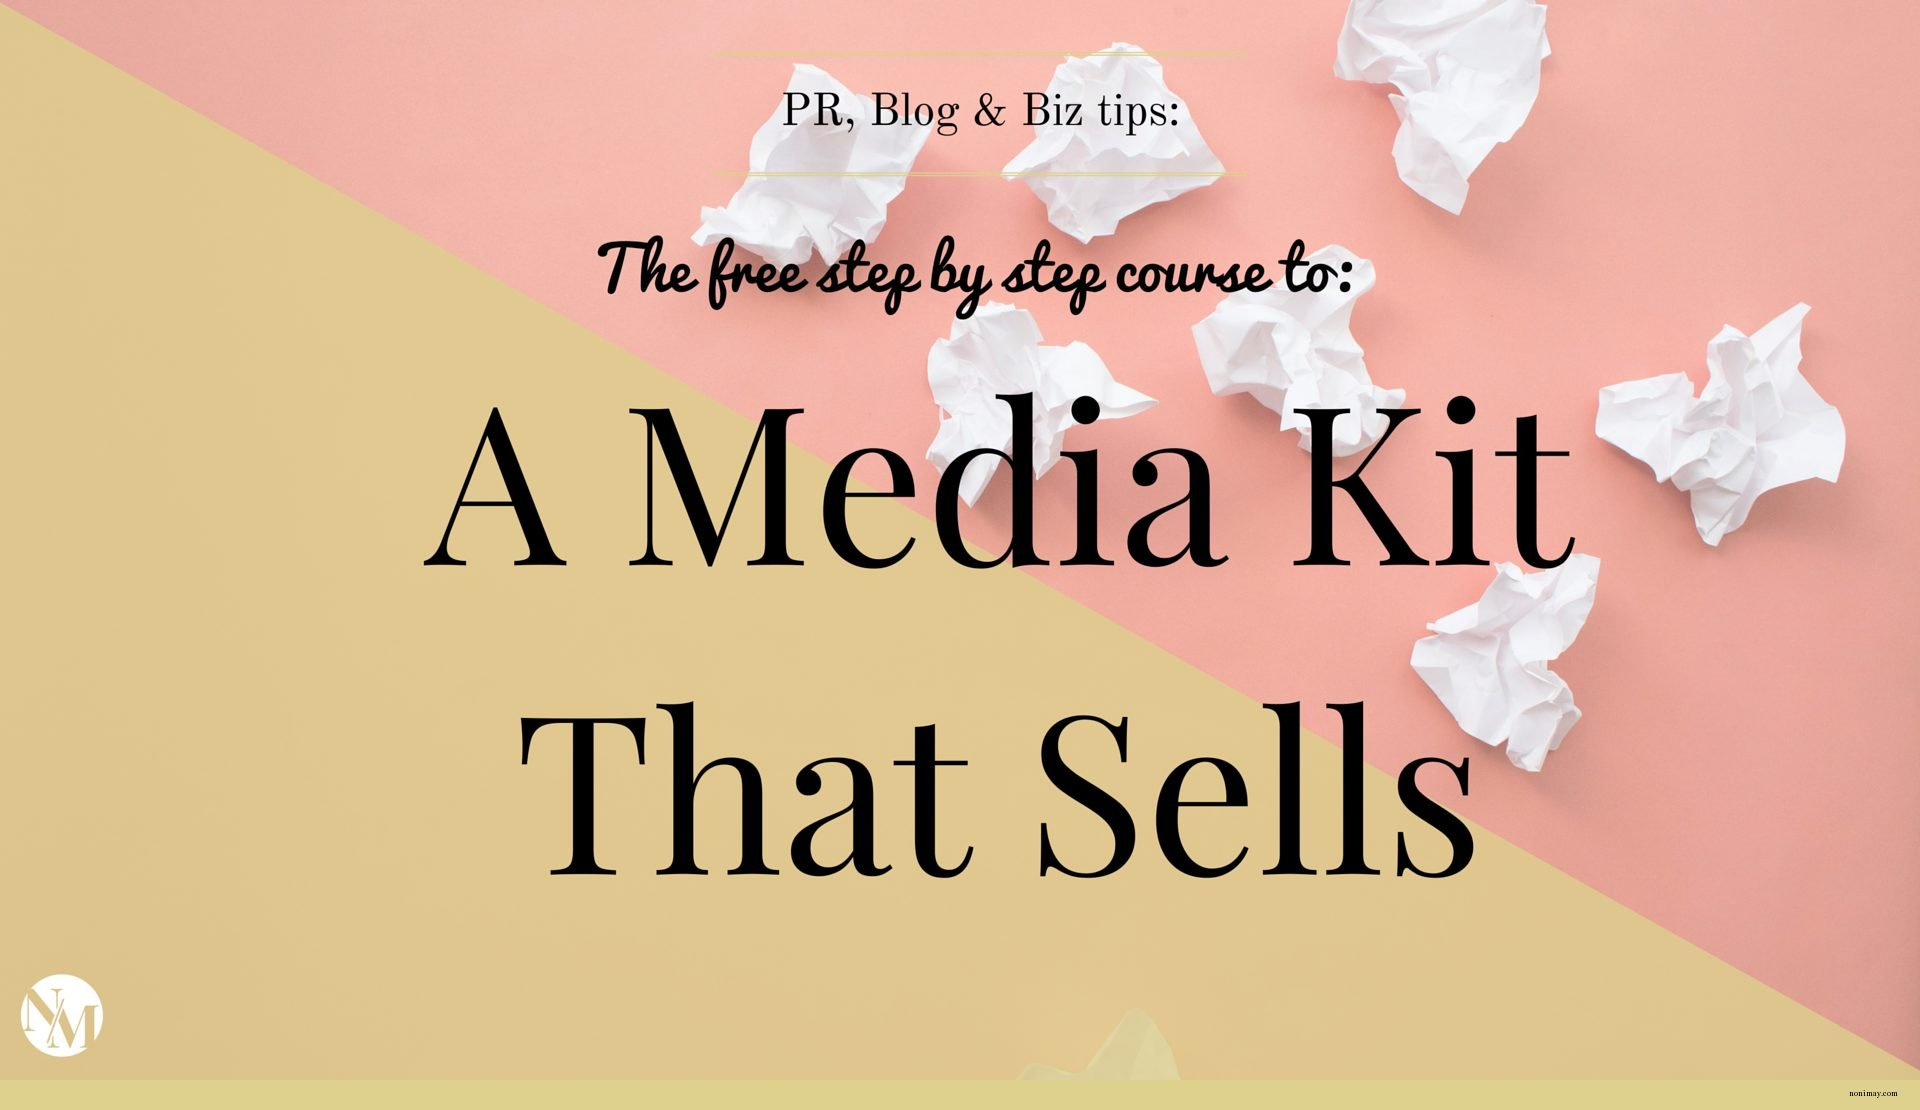 More press attention. More sales that take less time. More followers. More fun + freedom. (1)